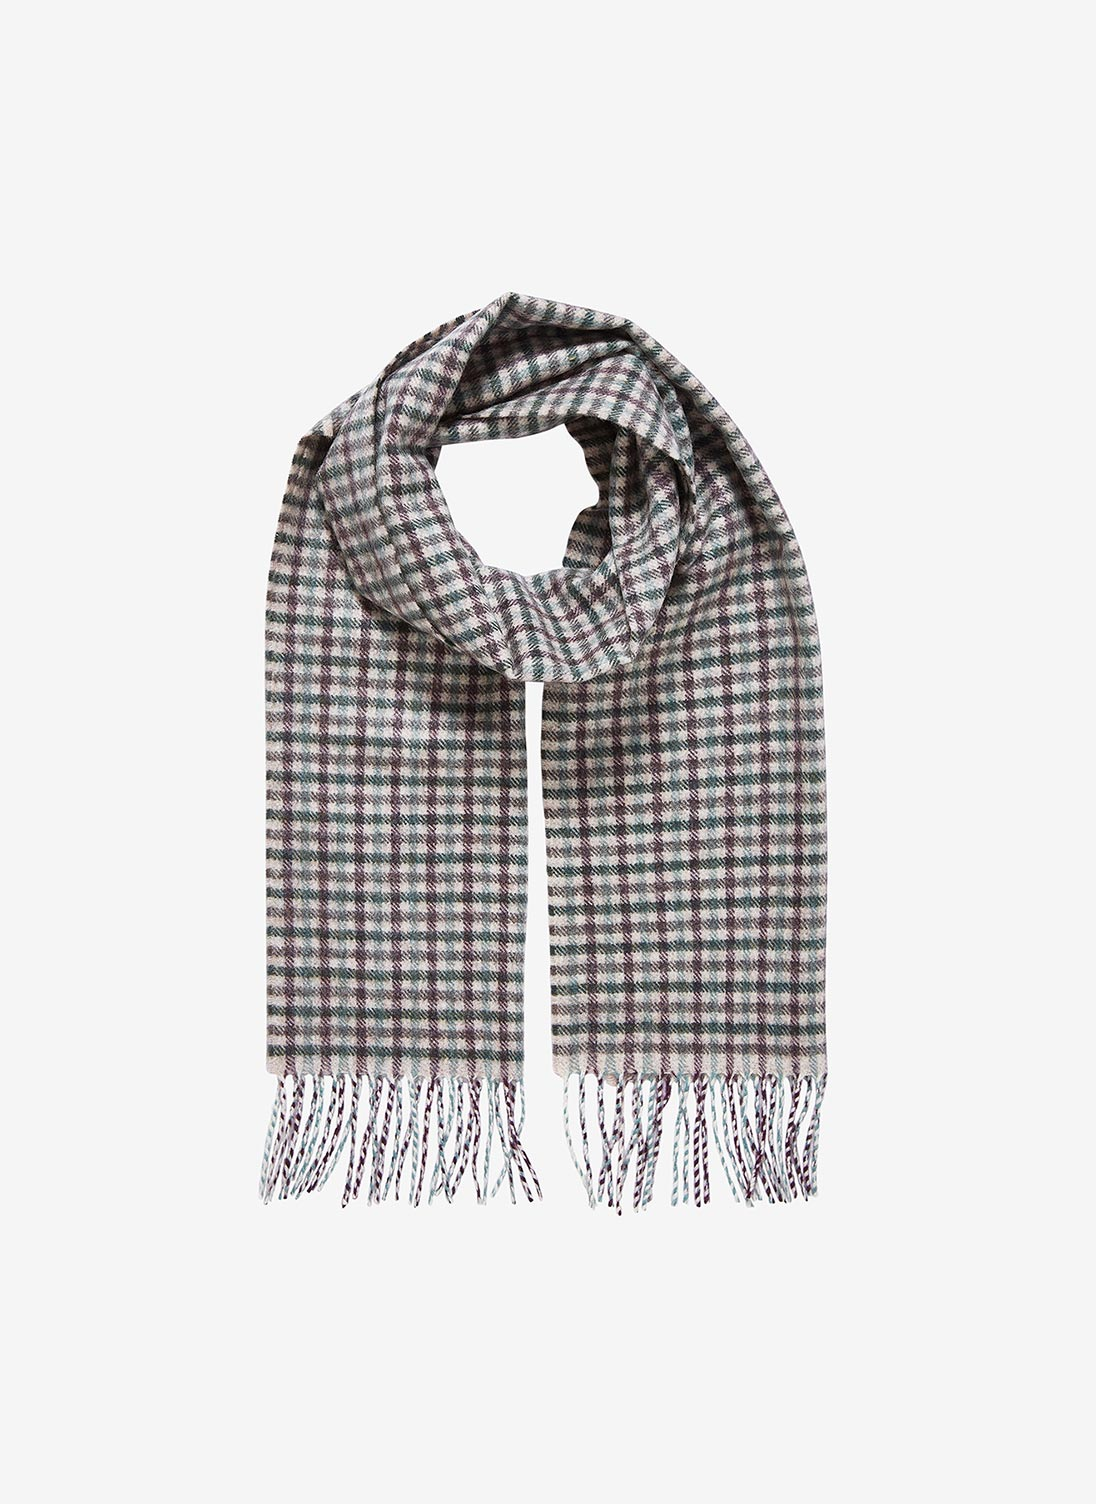 3e4f48953f91c Cashmere Plaid ScarfIn French Navy. $105.00$225.00. Add to Bag. Quick View